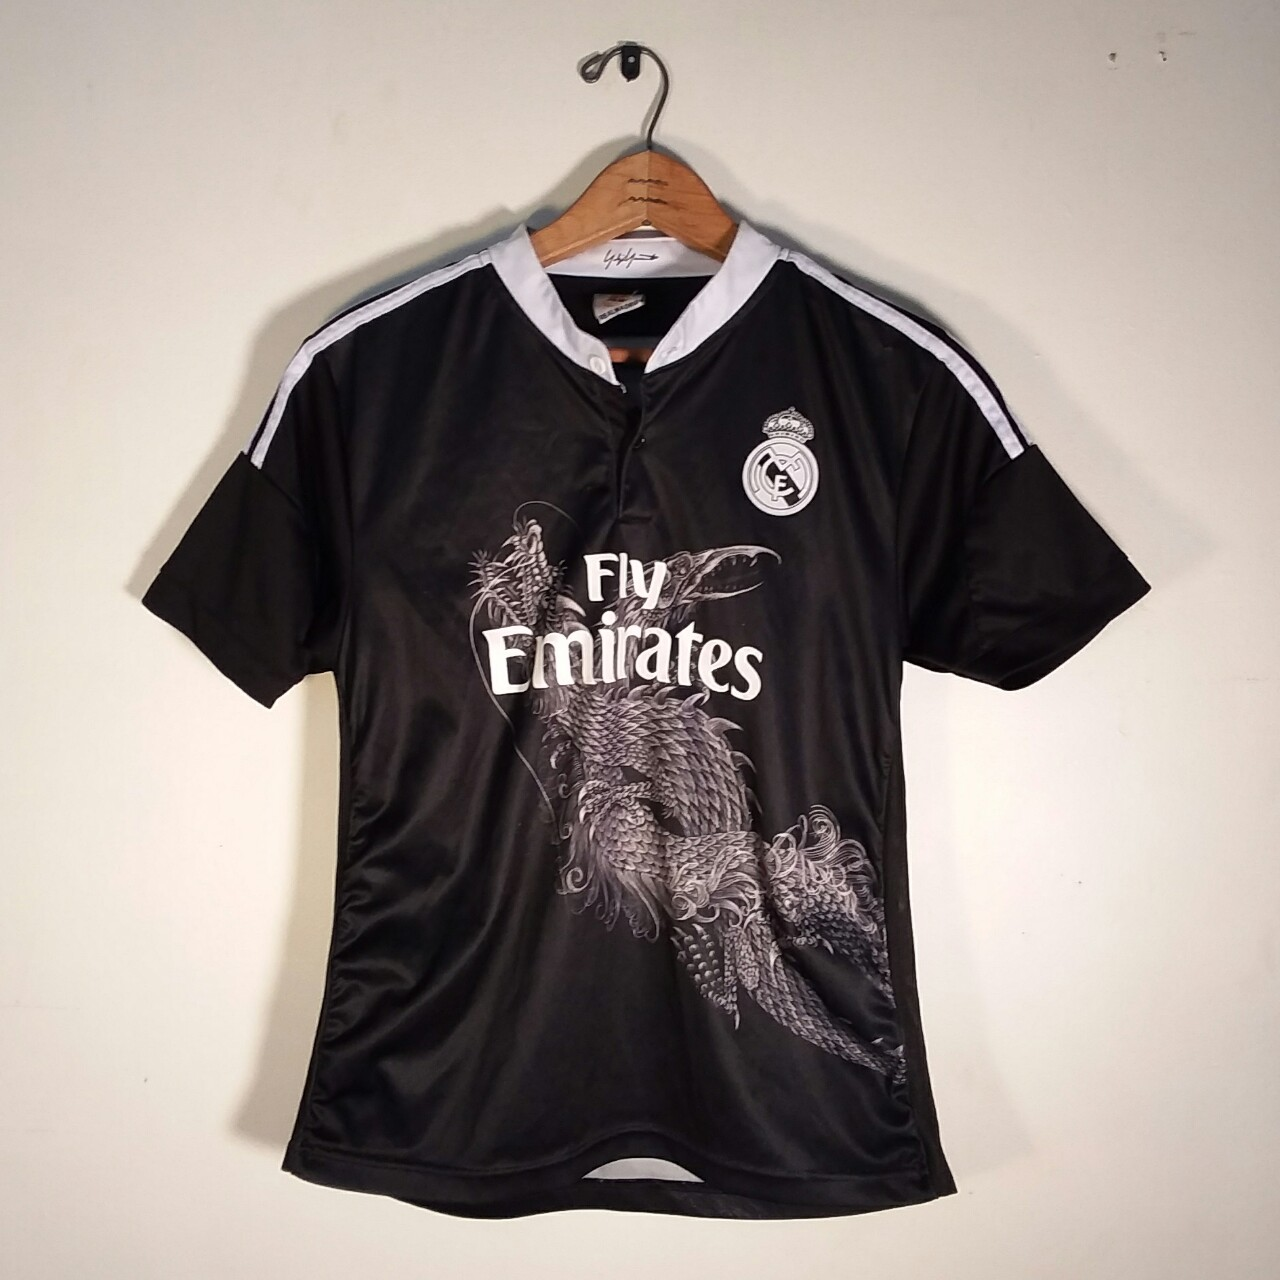 new style 6d962 37a48 Fly Emirates soccer Ronaldo jersey. In good... - Depop